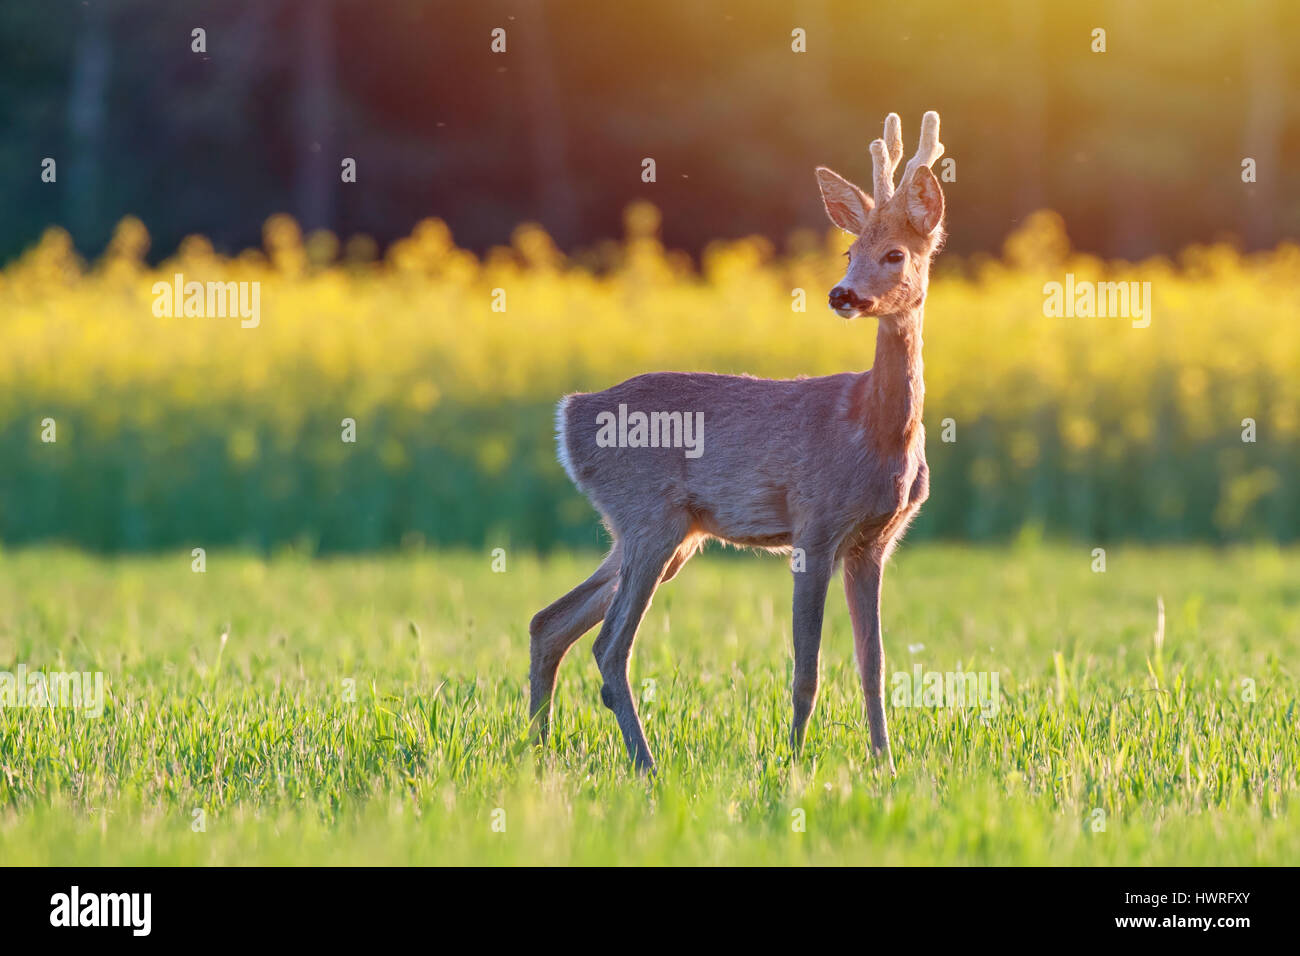 Wild roe deer in a field at sunset - Stock Image